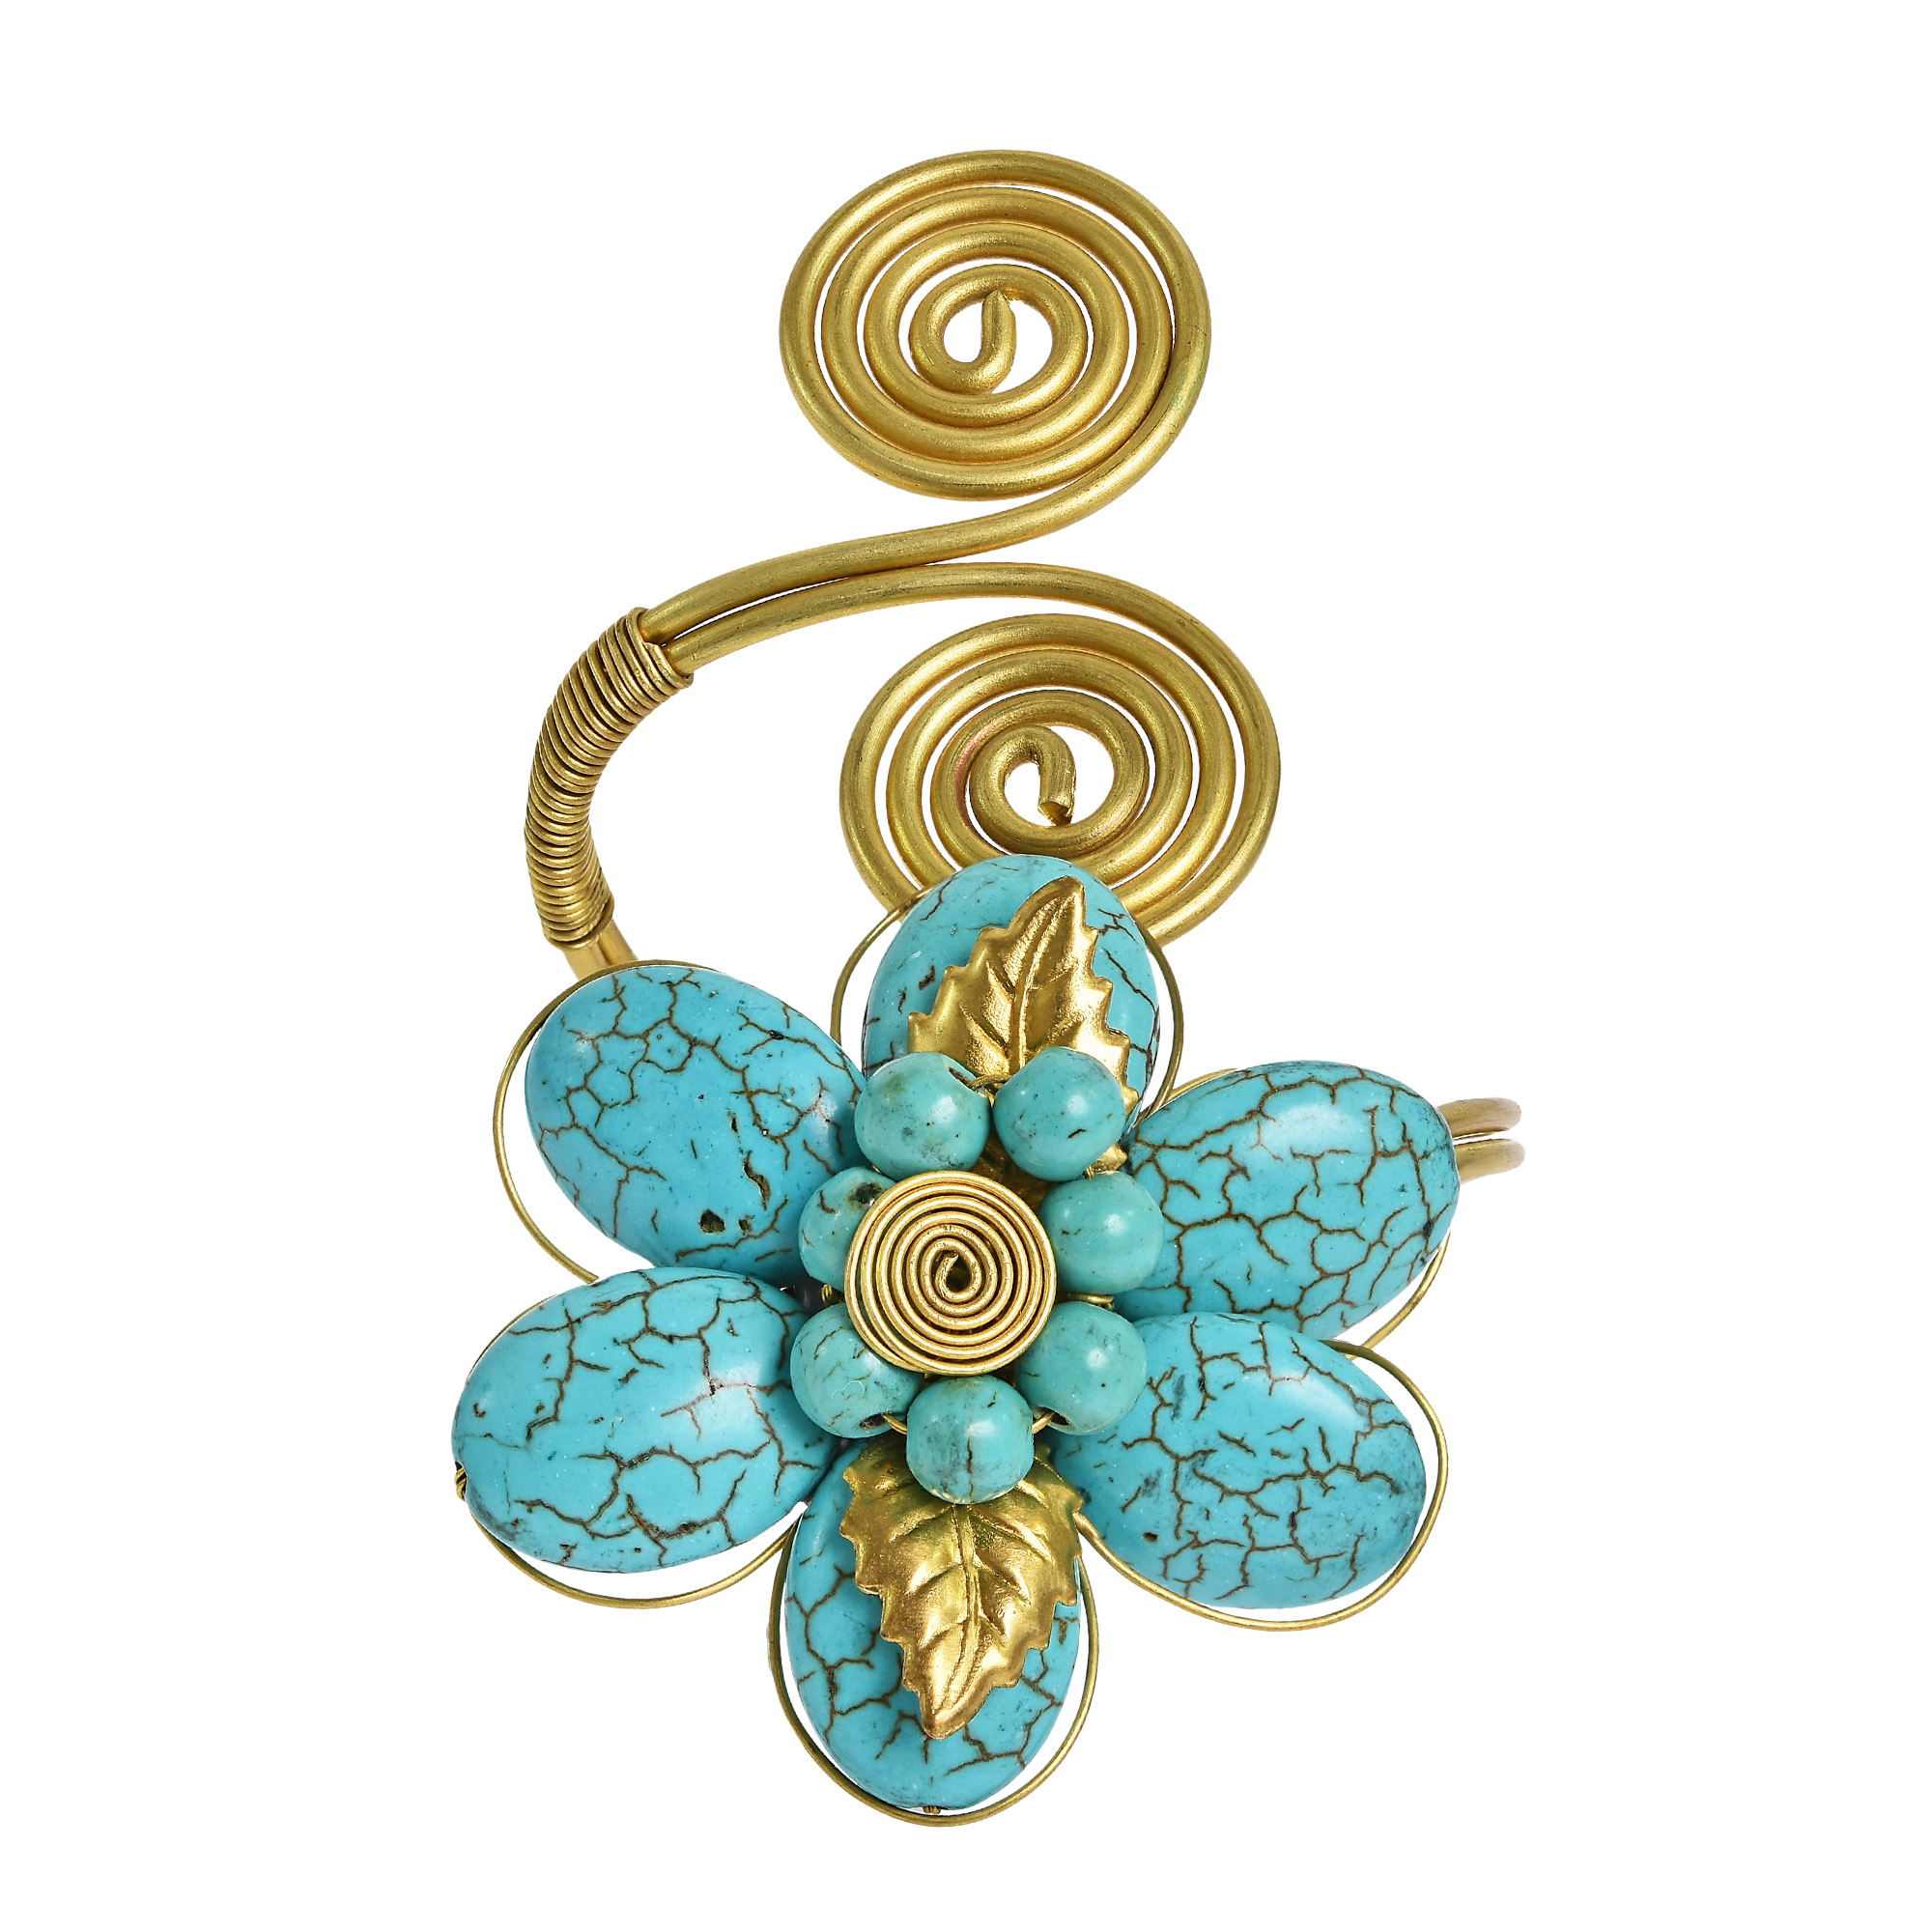 Natural beauty blue turquoise flower brass swirls wrap around a beautiful mix of colorful stone and brass wire is combined to create this stylish statement piece izmirmasajfo